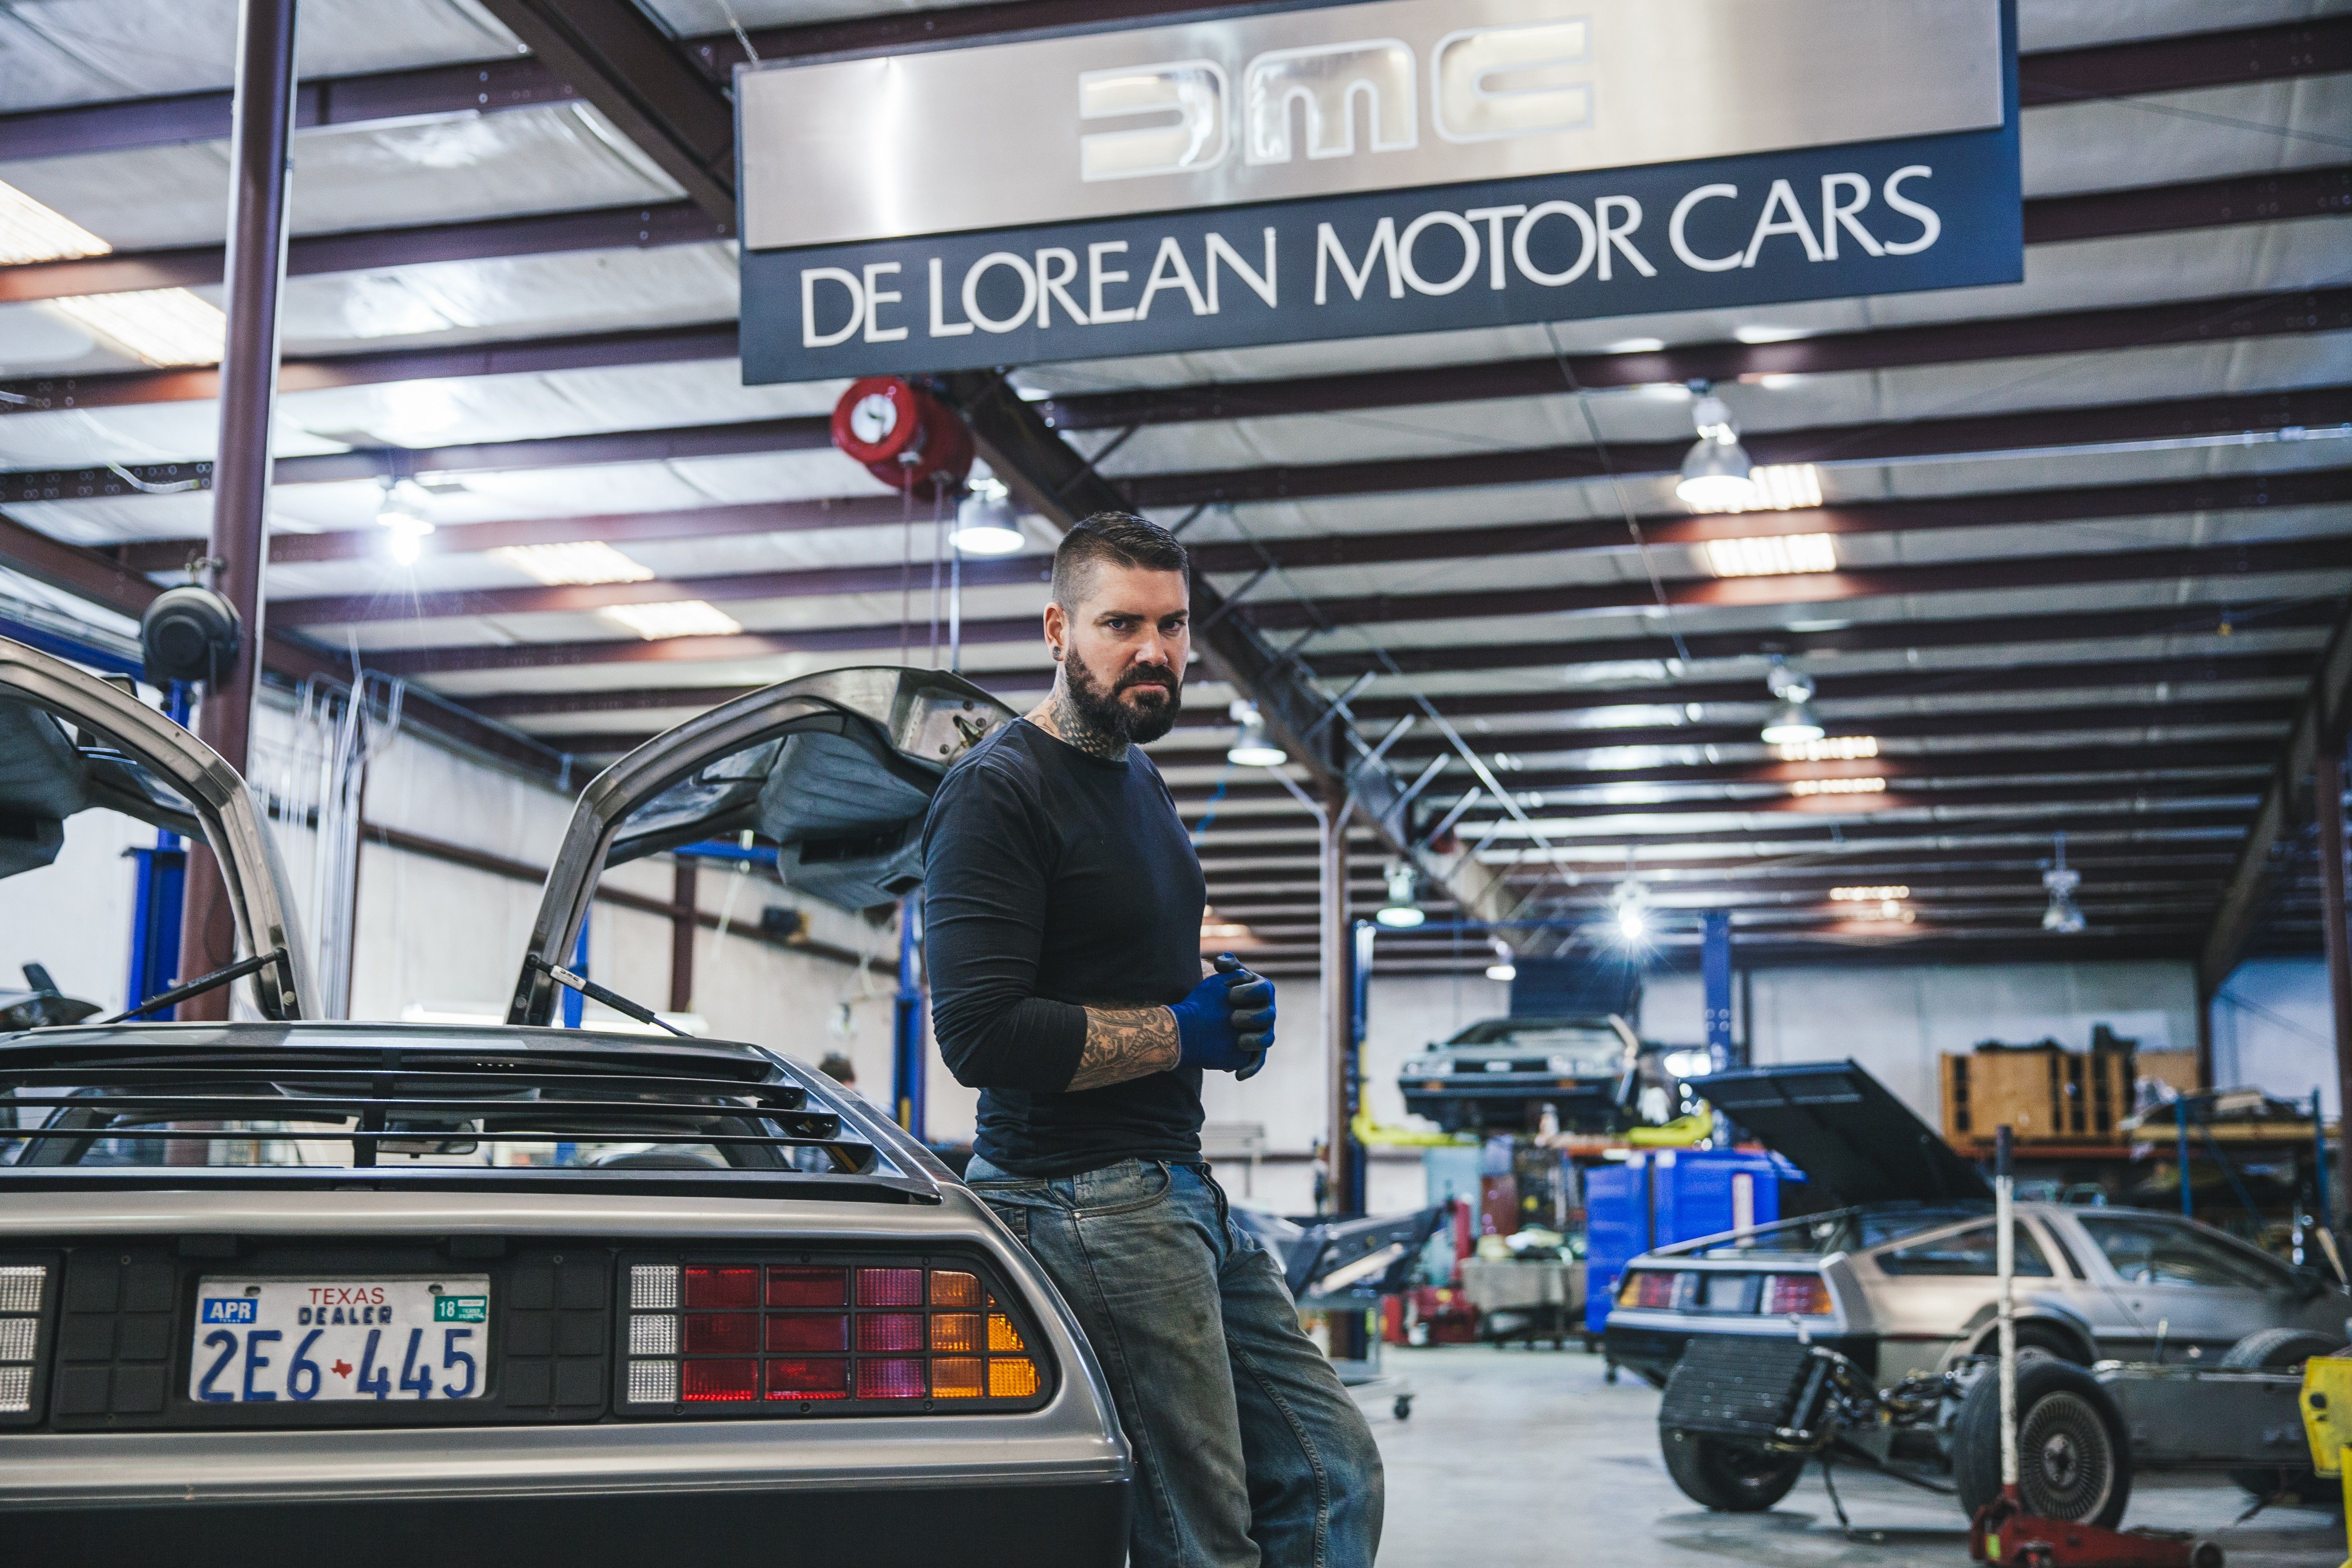 Delorean Reboot National Geographic Channel Abu Dhabi Photos Supercar Megabuild National Geographic Channel Abu Dhabi National Geographic Channel Middle East English